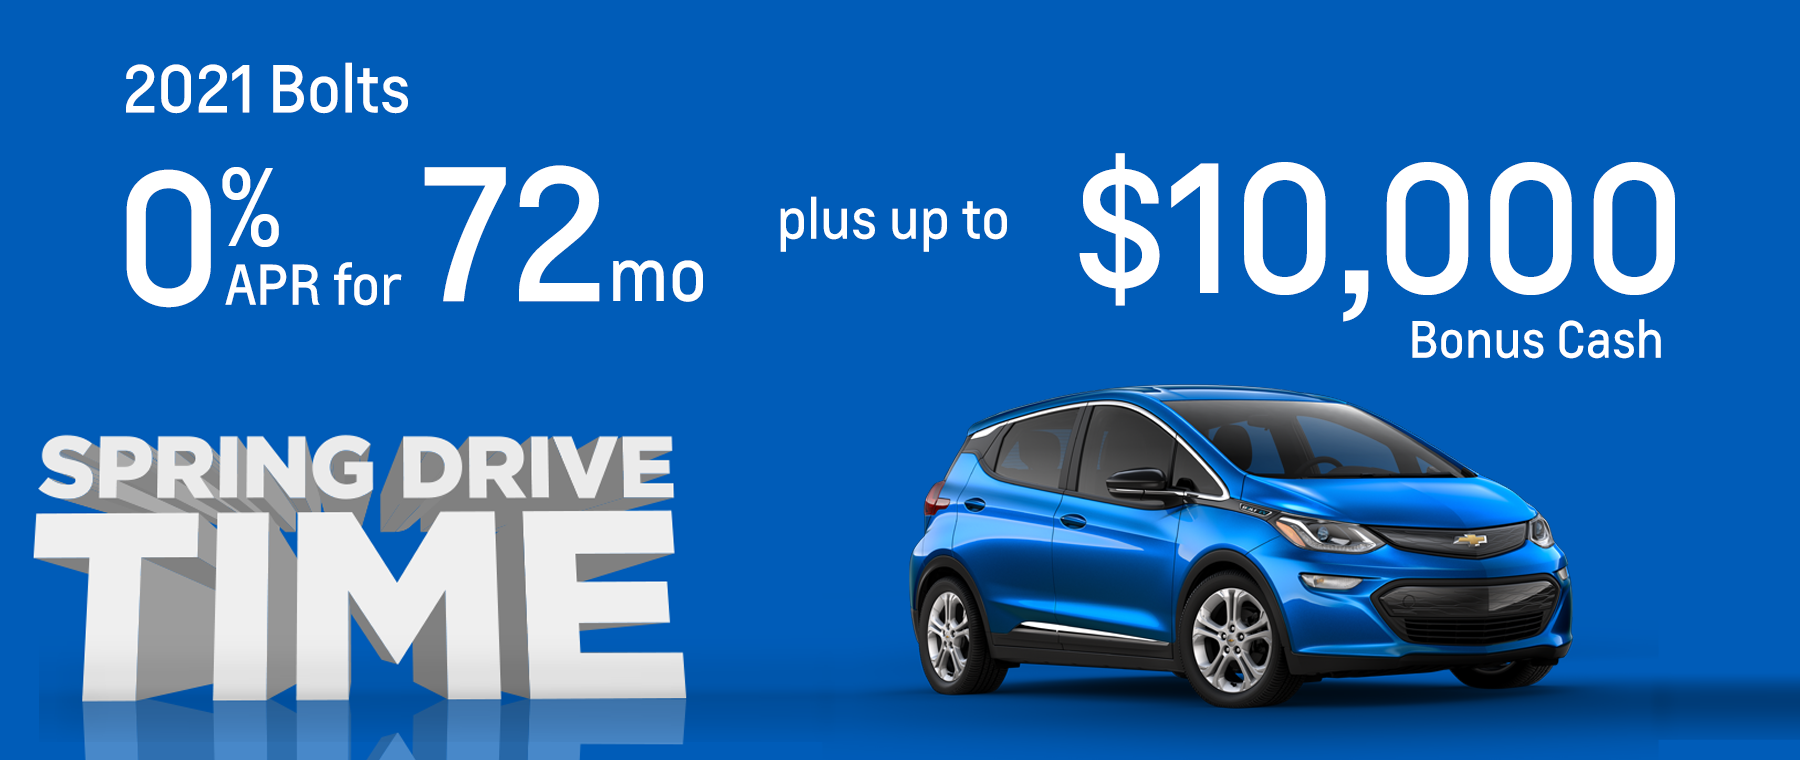 Chevy-Bolt-April-2021-Display1800X760